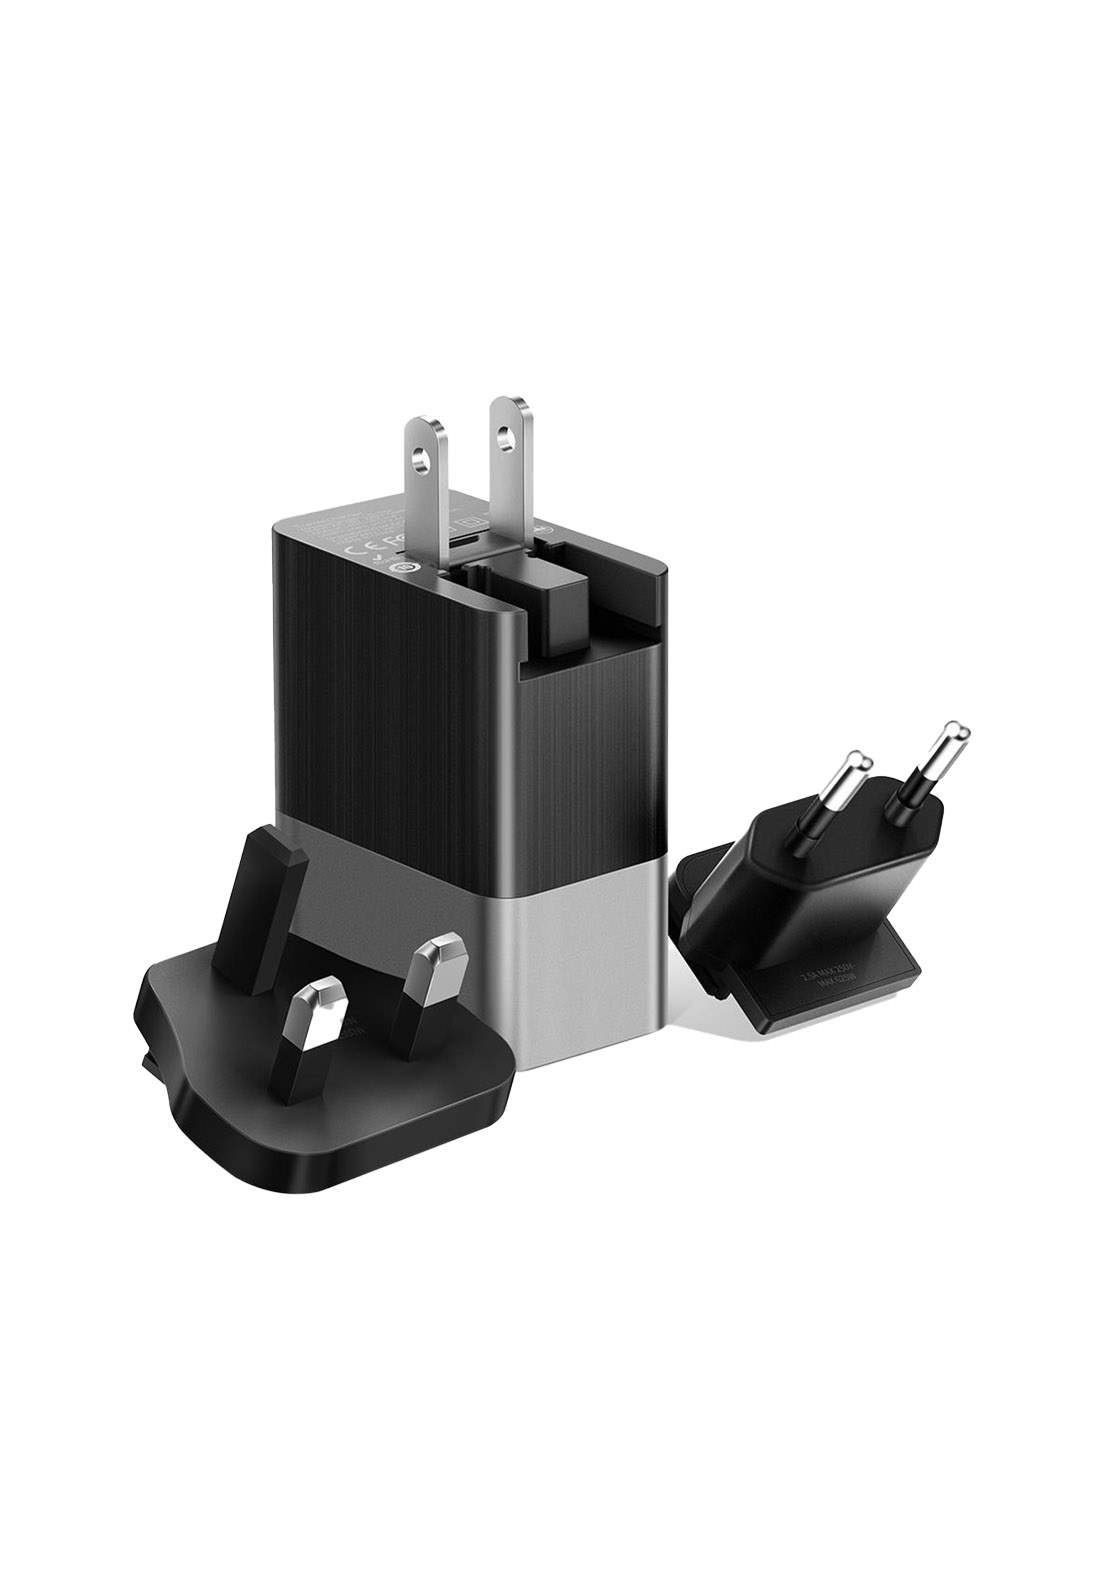 (3500)Mcdodo CH05341 3 in 1 3-USB Ports Replacable Wall Charger (EU/UK/US) Plug - Black  شاحن